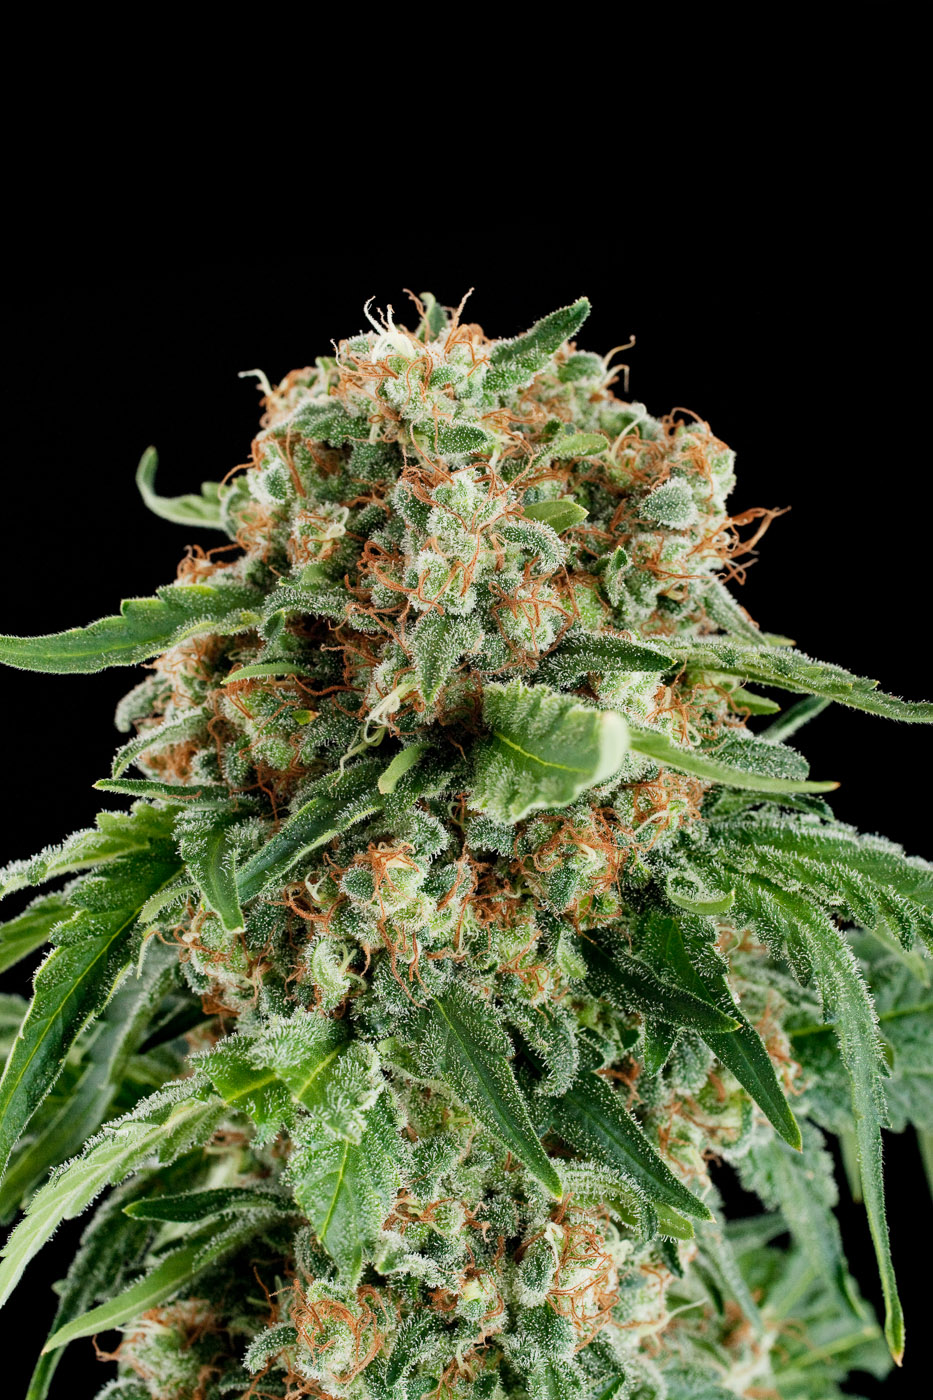 White siberian acheter des graines de cannabis white for Graine de cannabis interieur